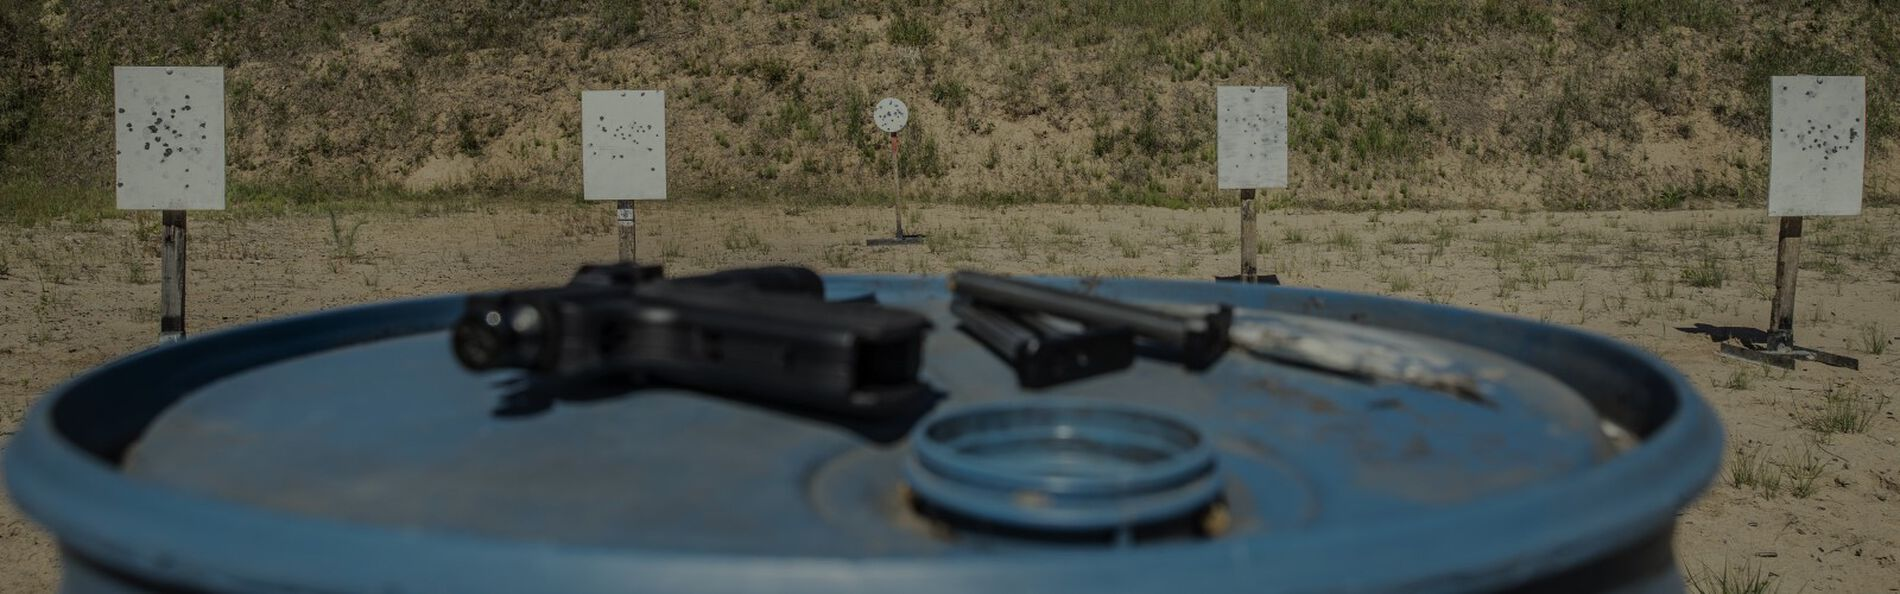 Outdoor Target Range with a Handgun resting on a blue barrel